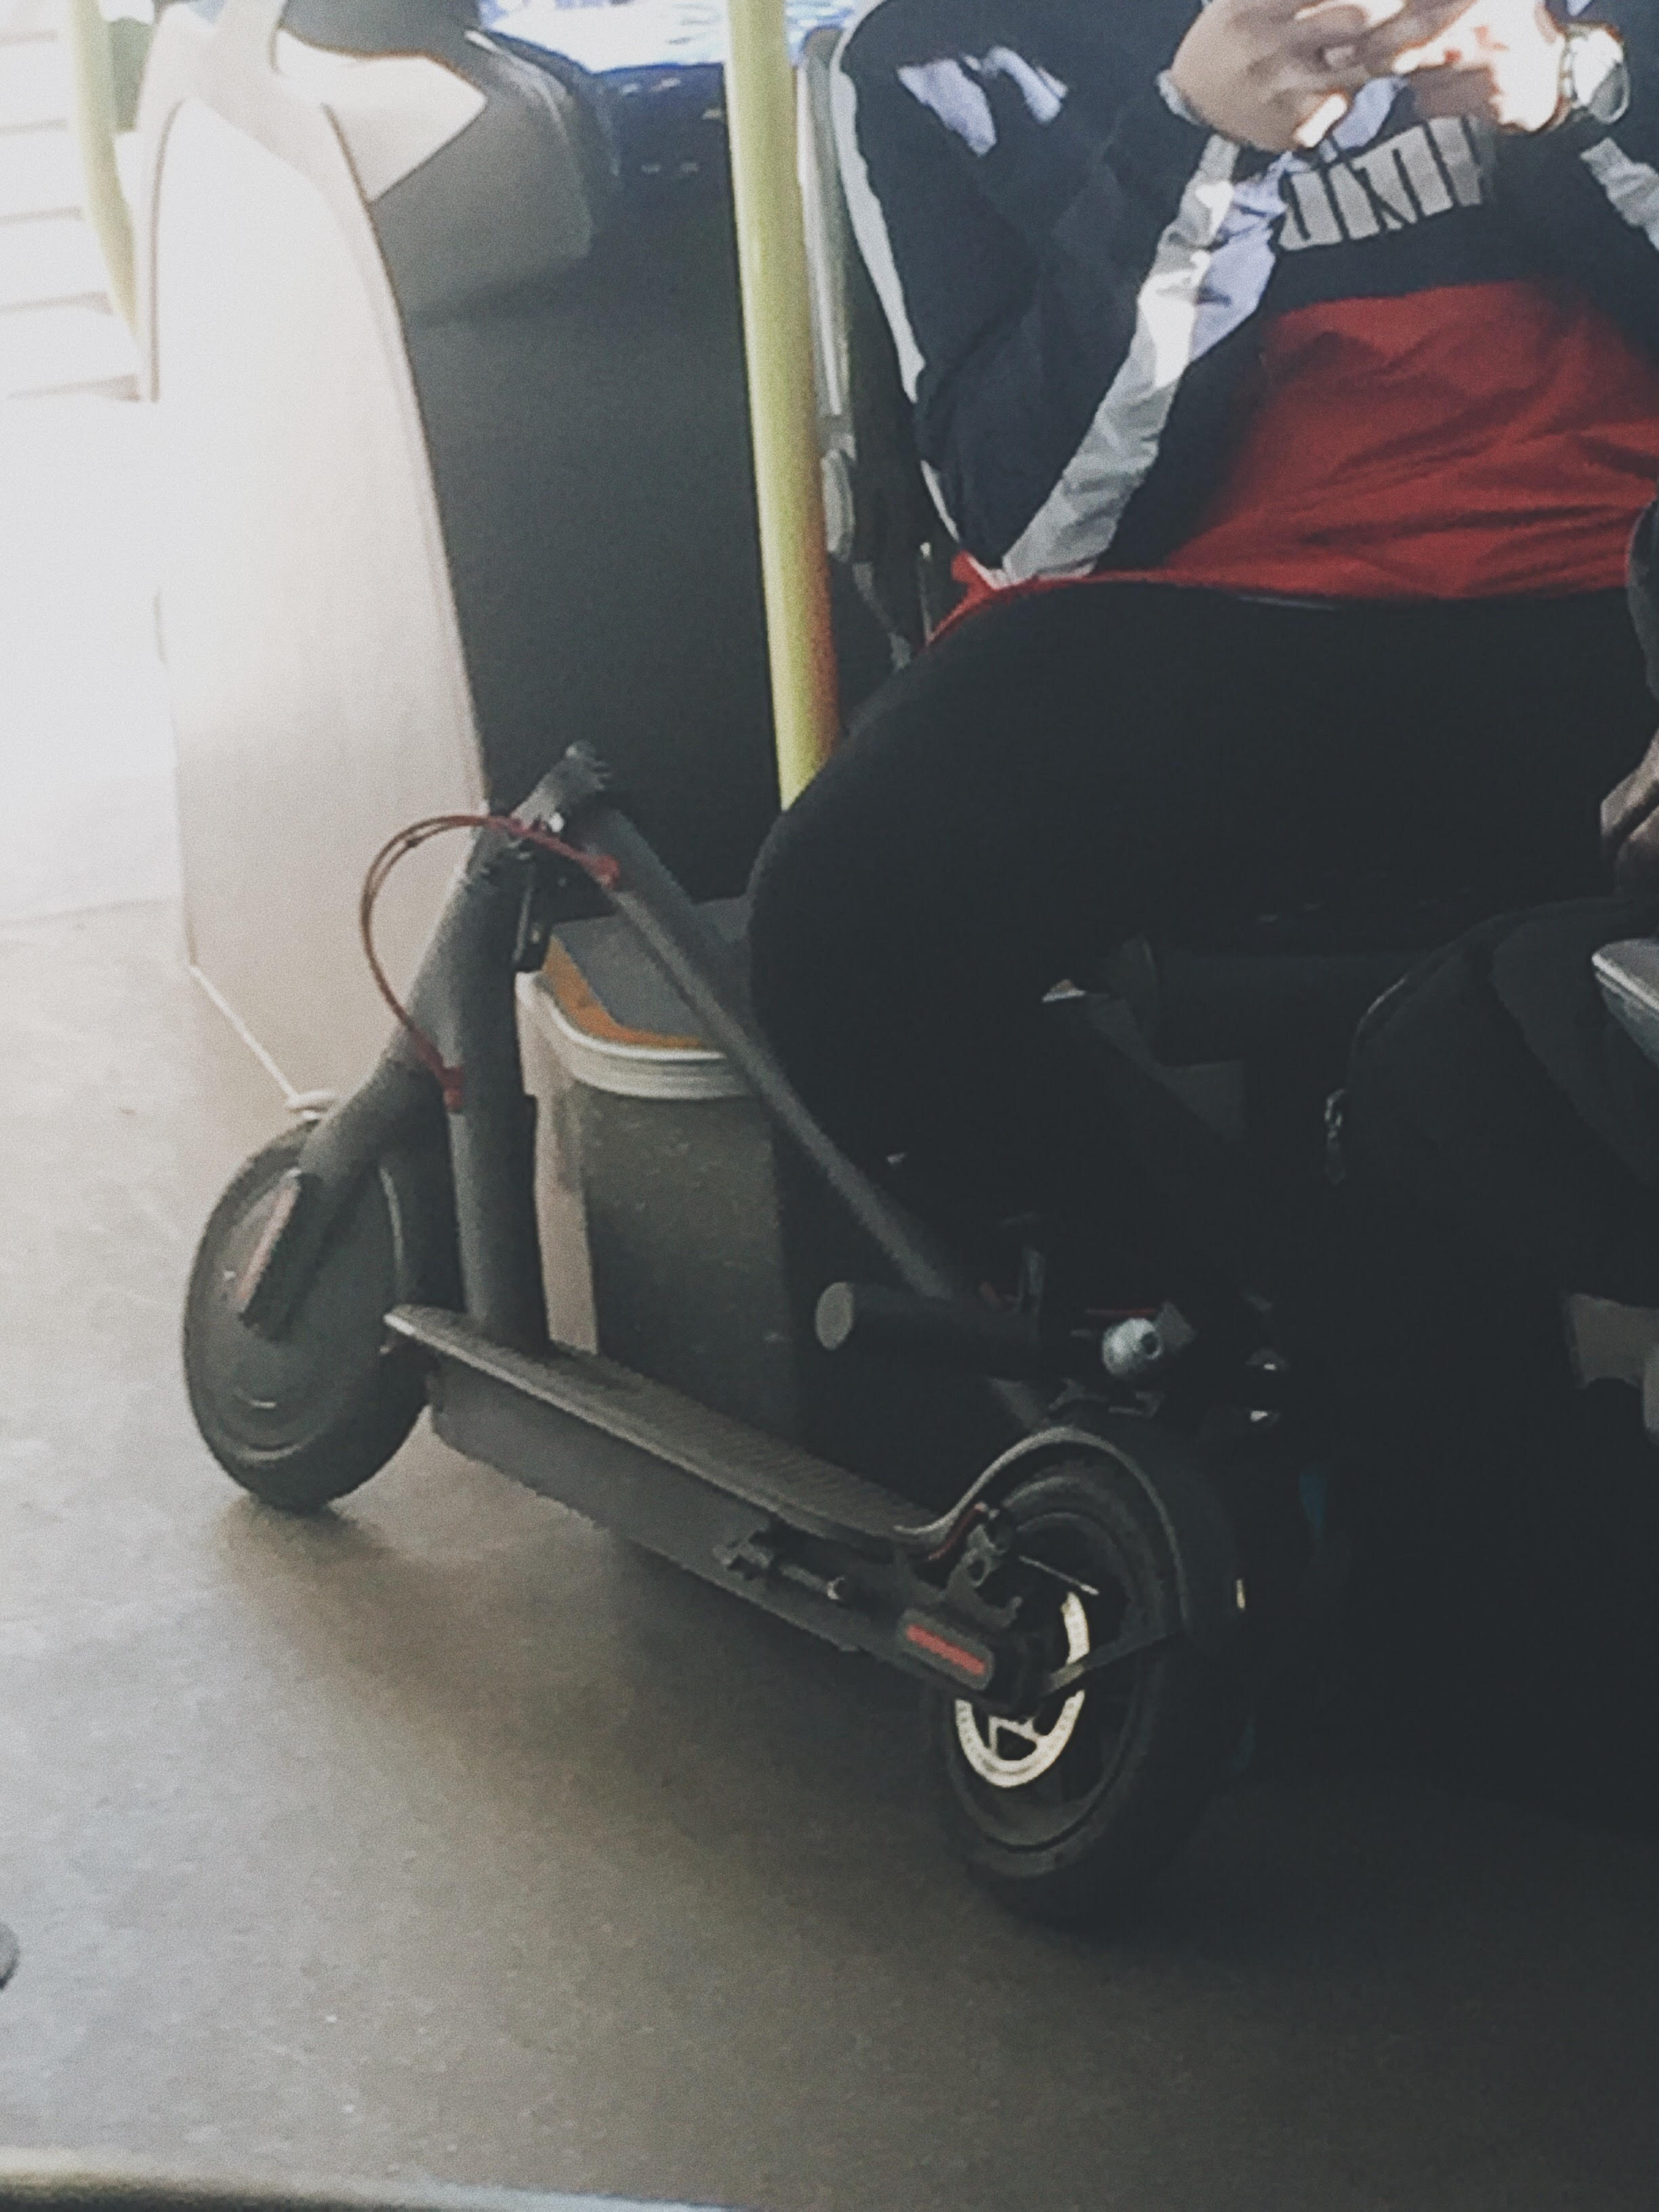 An electric scooter carried by a student inside a bus in Barcelona